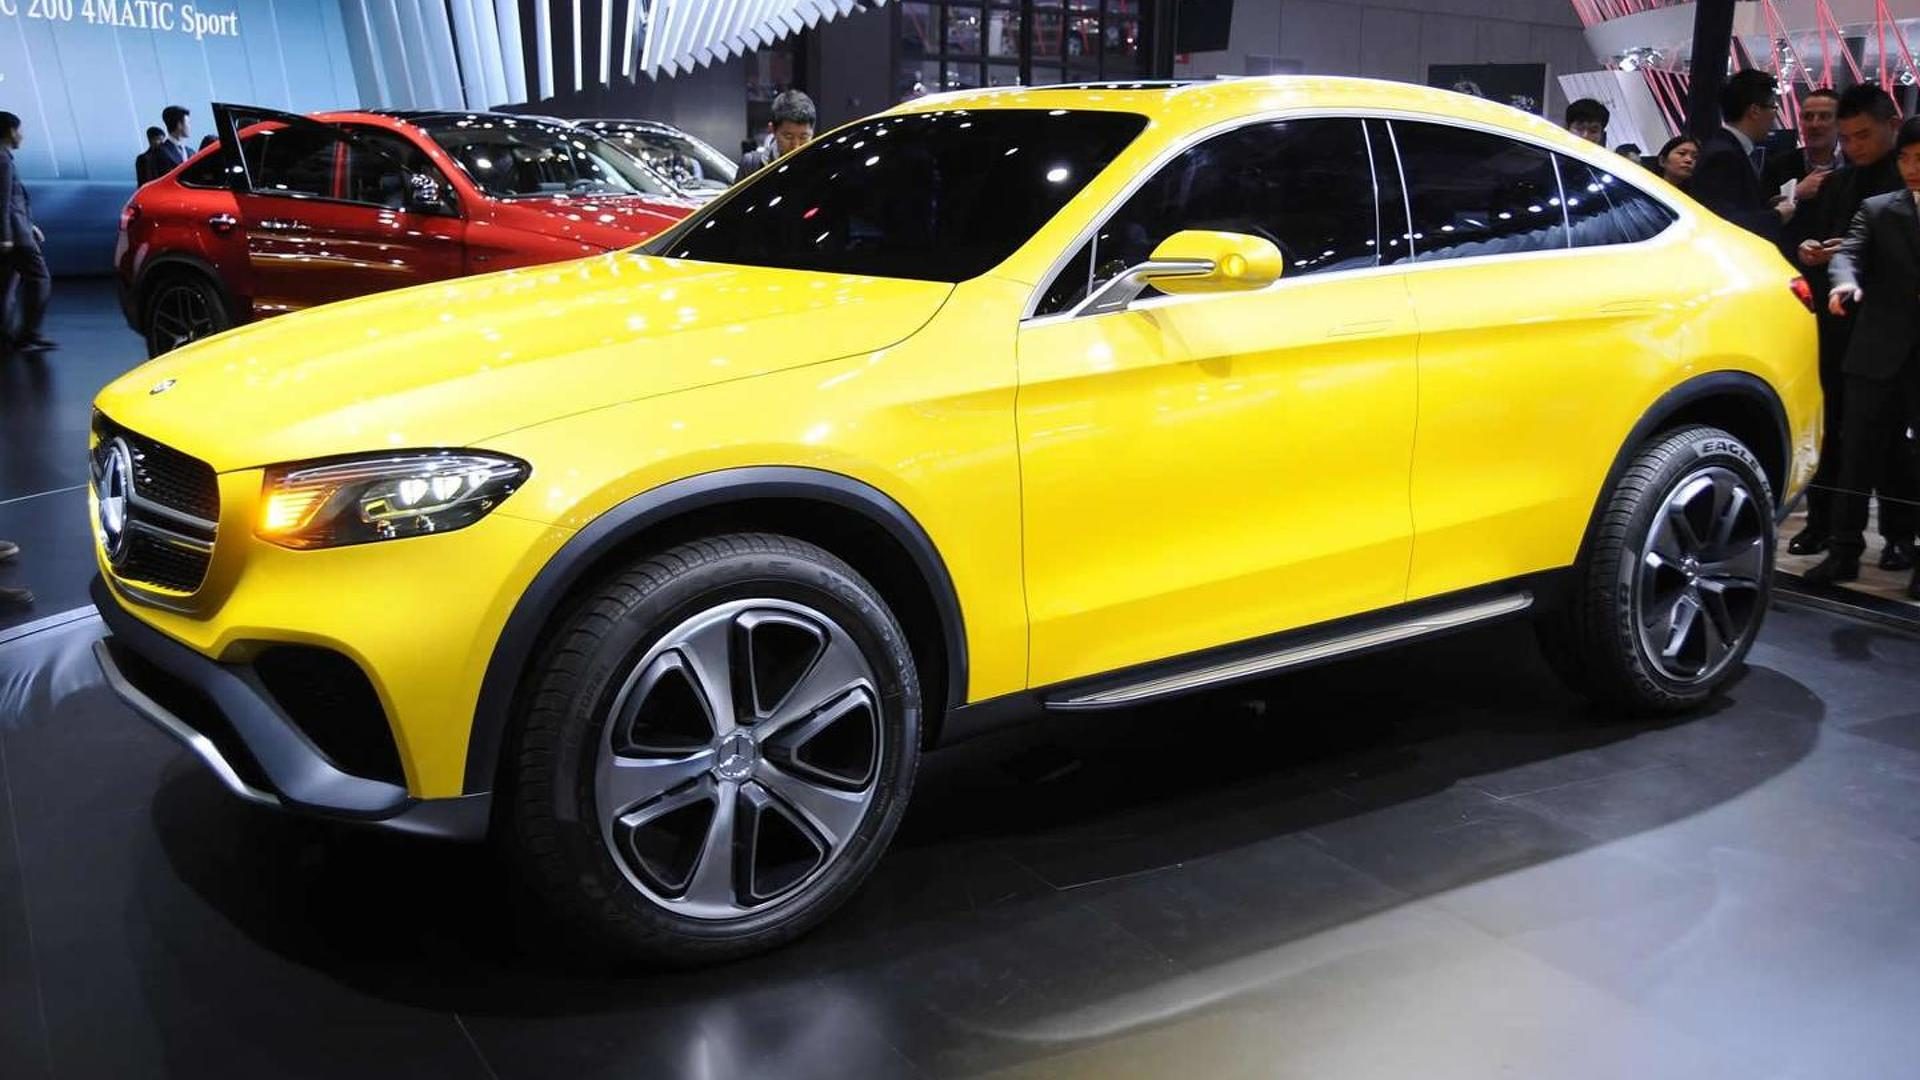 https://icdn-9.motor1.com/images/mgl/QyGl8/s1/2015-563346-mercedes-benz-concept-glc-coupe-at-auto-shanghai-20151.jpg